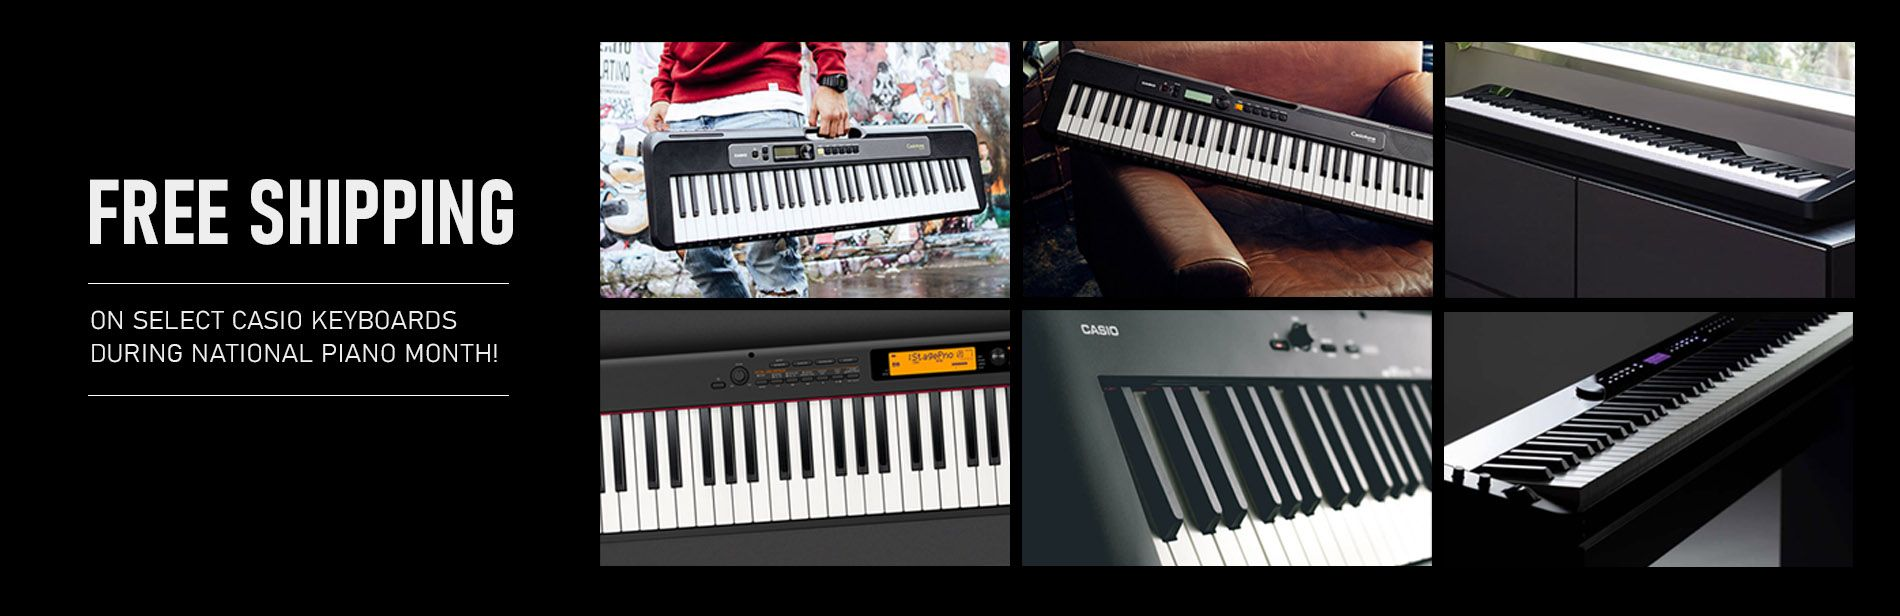 Free shipping on select Casio keyboards during national piano month